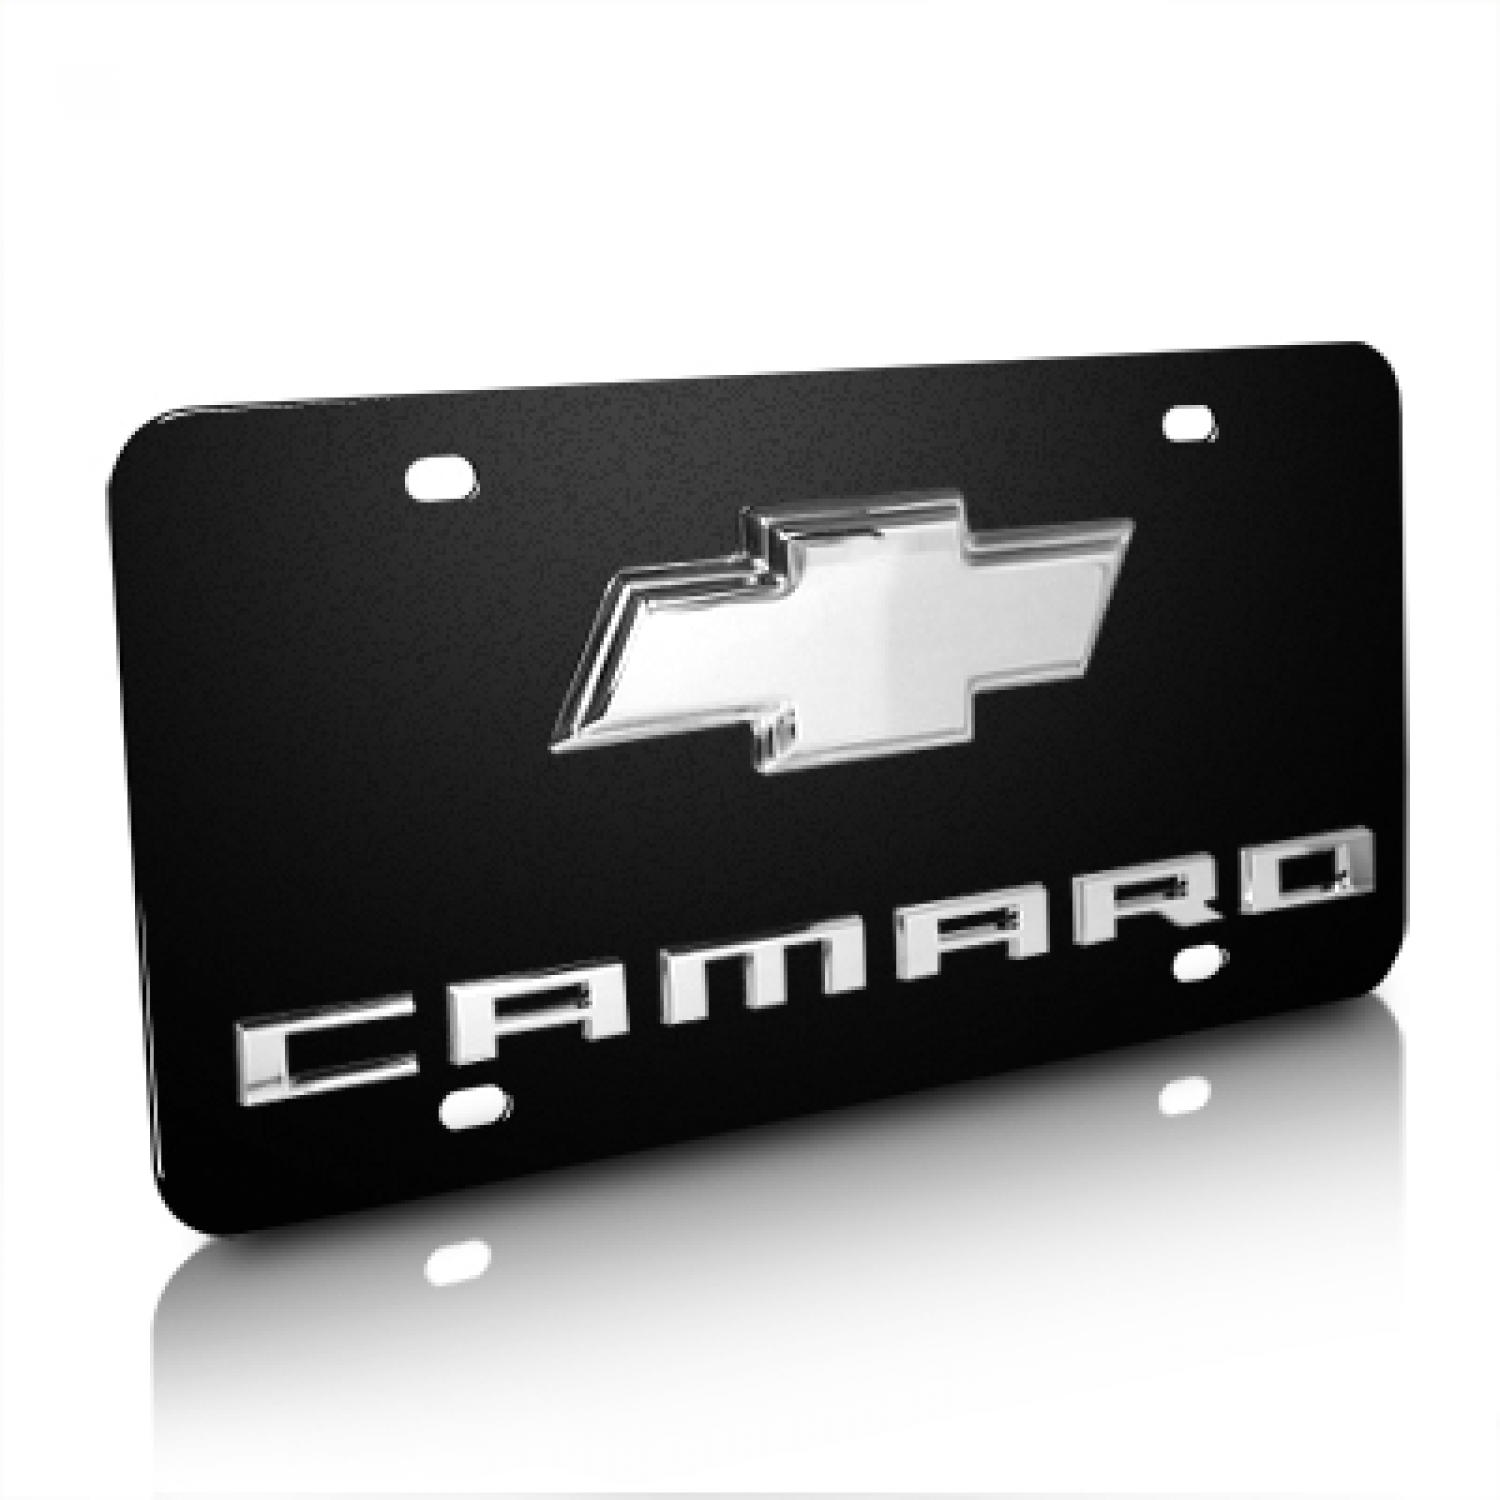 Chevrolet Camaro With Chrome Bowtie 3D Logo Black Stainless Steel License Plate